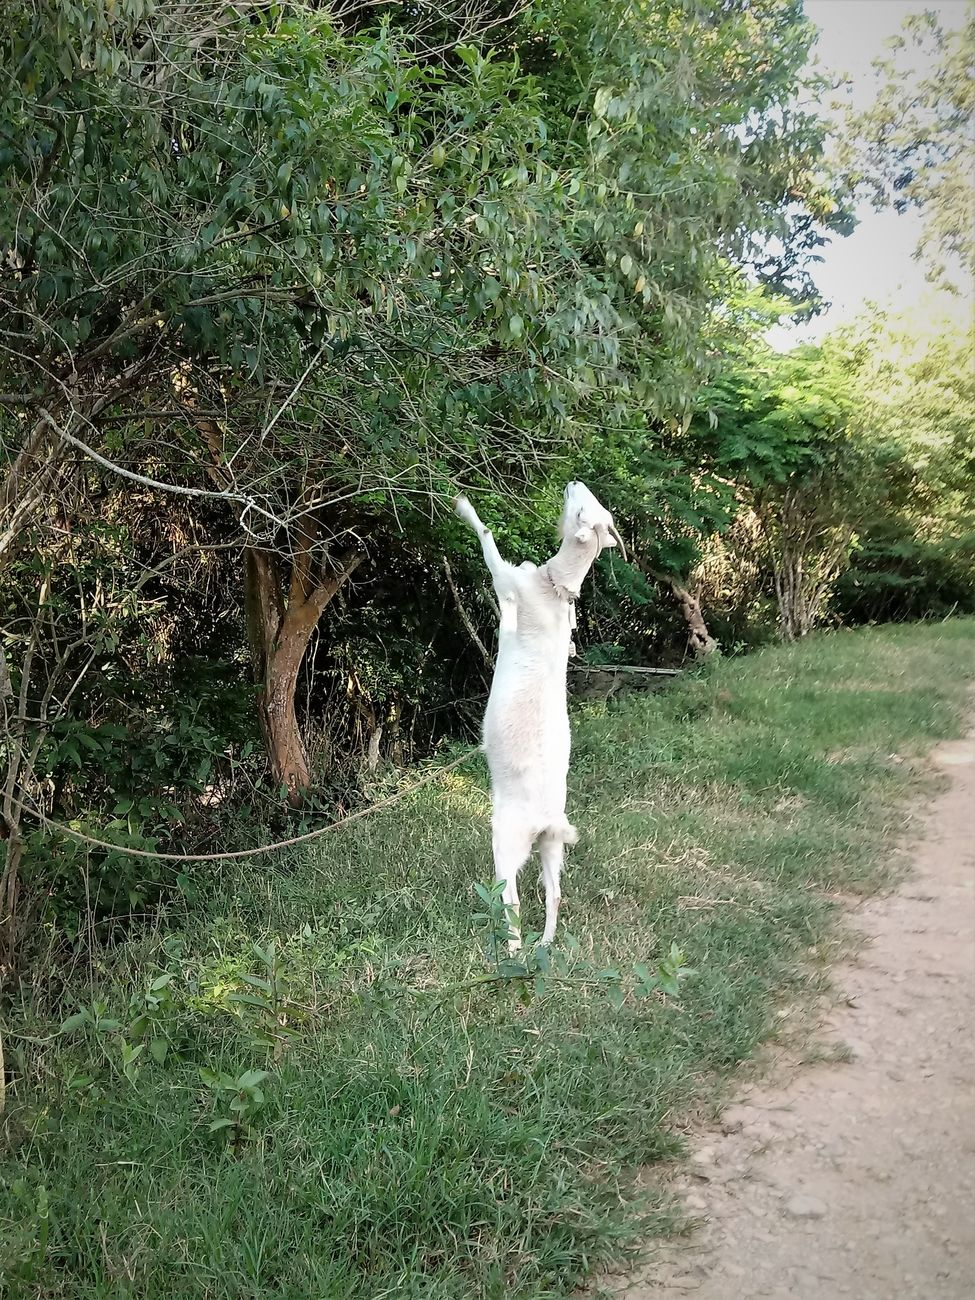 A white goat is dedicated to eat trying to reach their delicacies